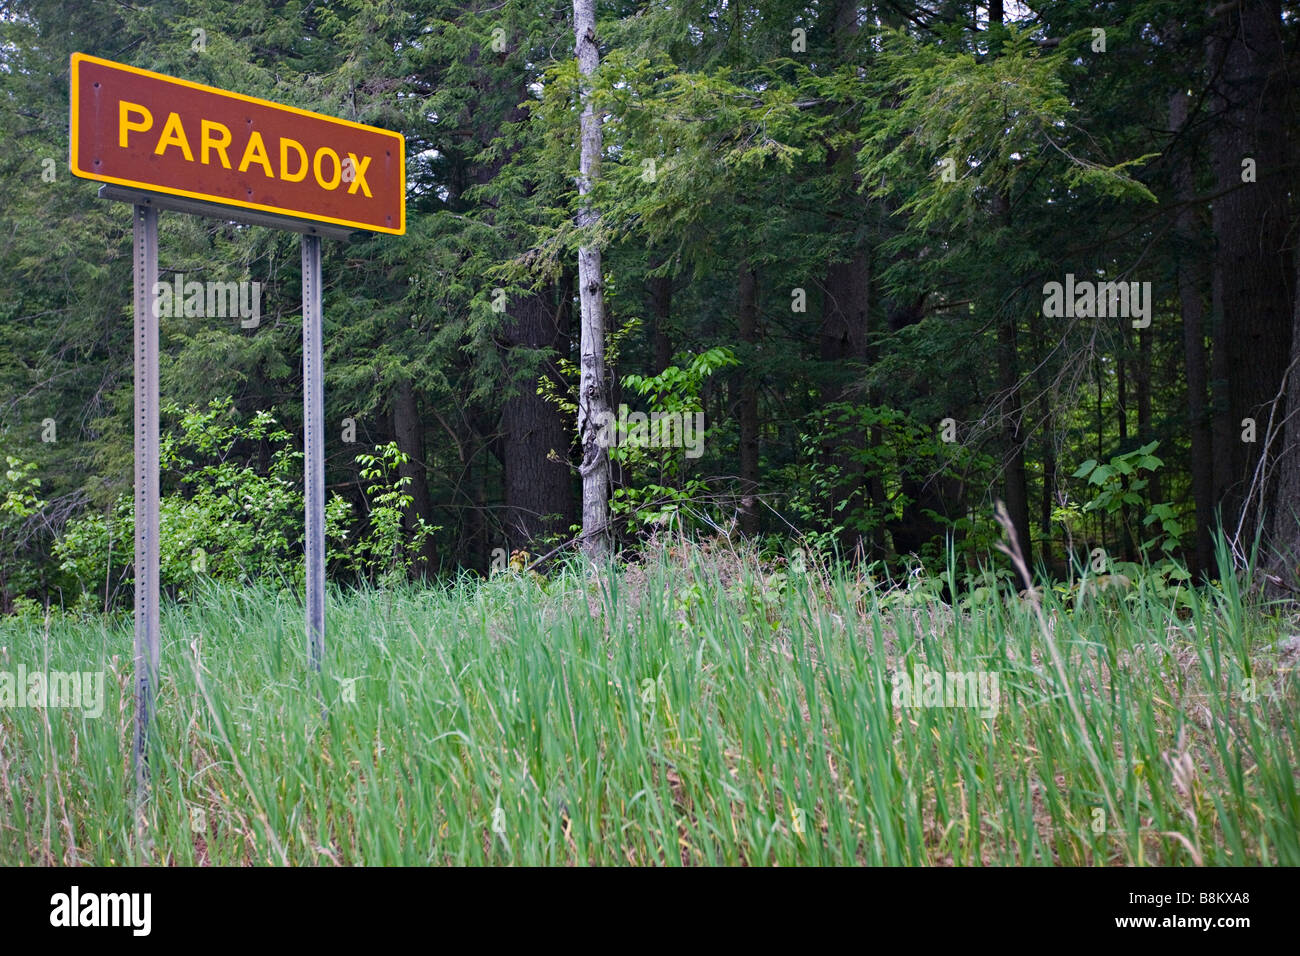 Sign for Paradox Village, New York State, USA Stock Photo